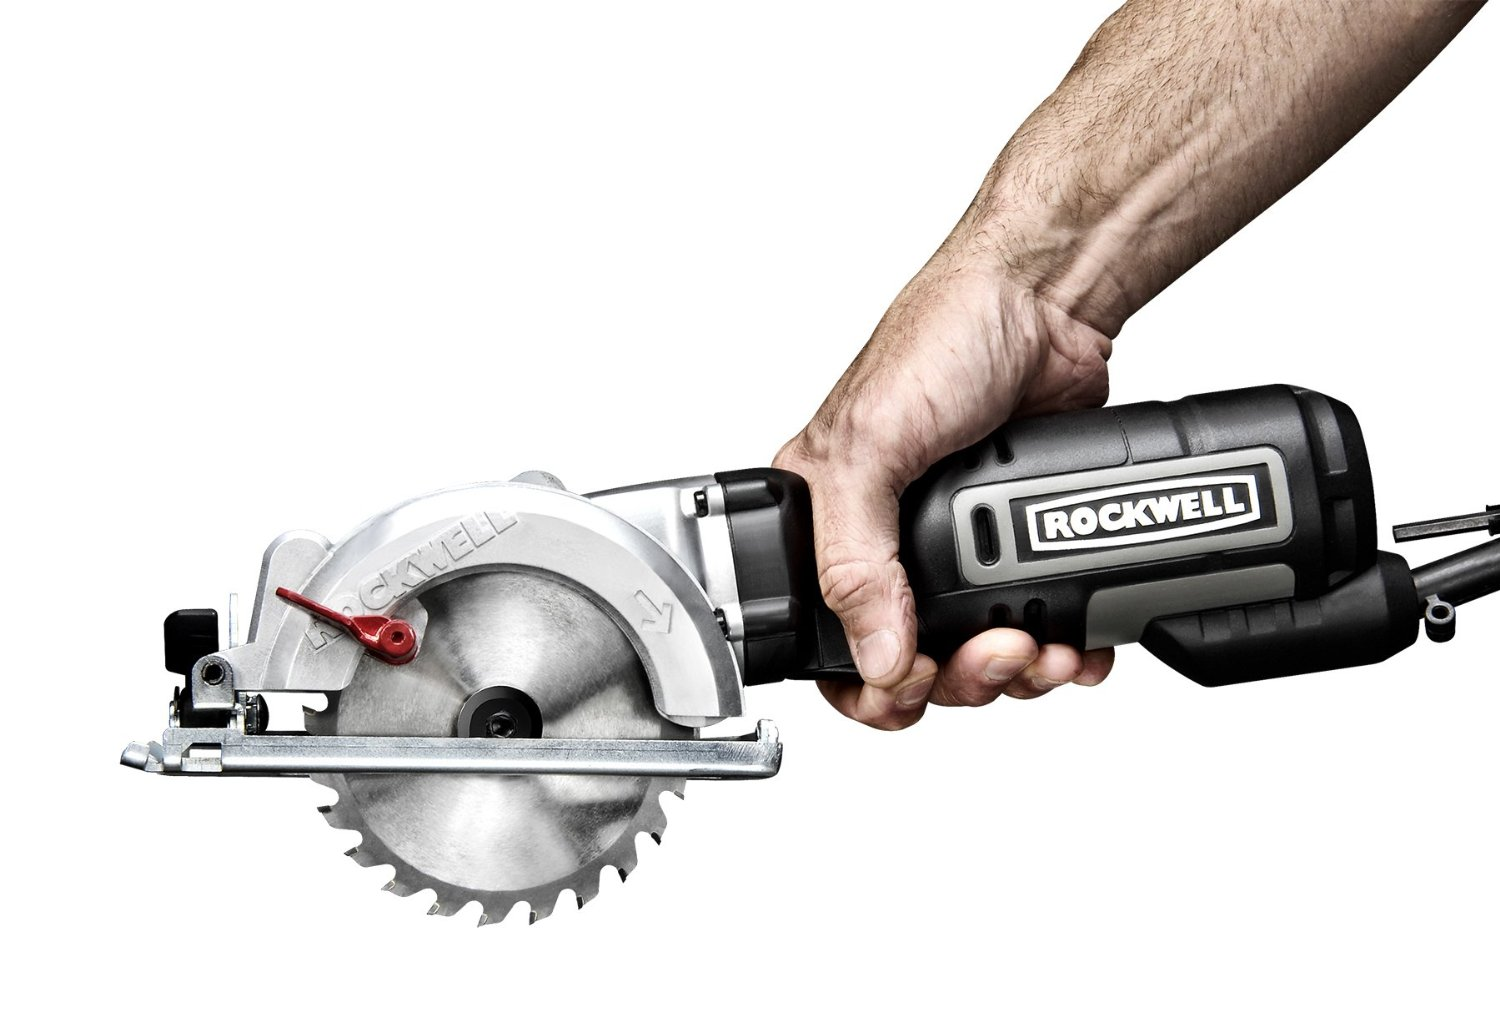 Rockwell rk3441k review a perfect compact circular saw saw wiz greentooth Images